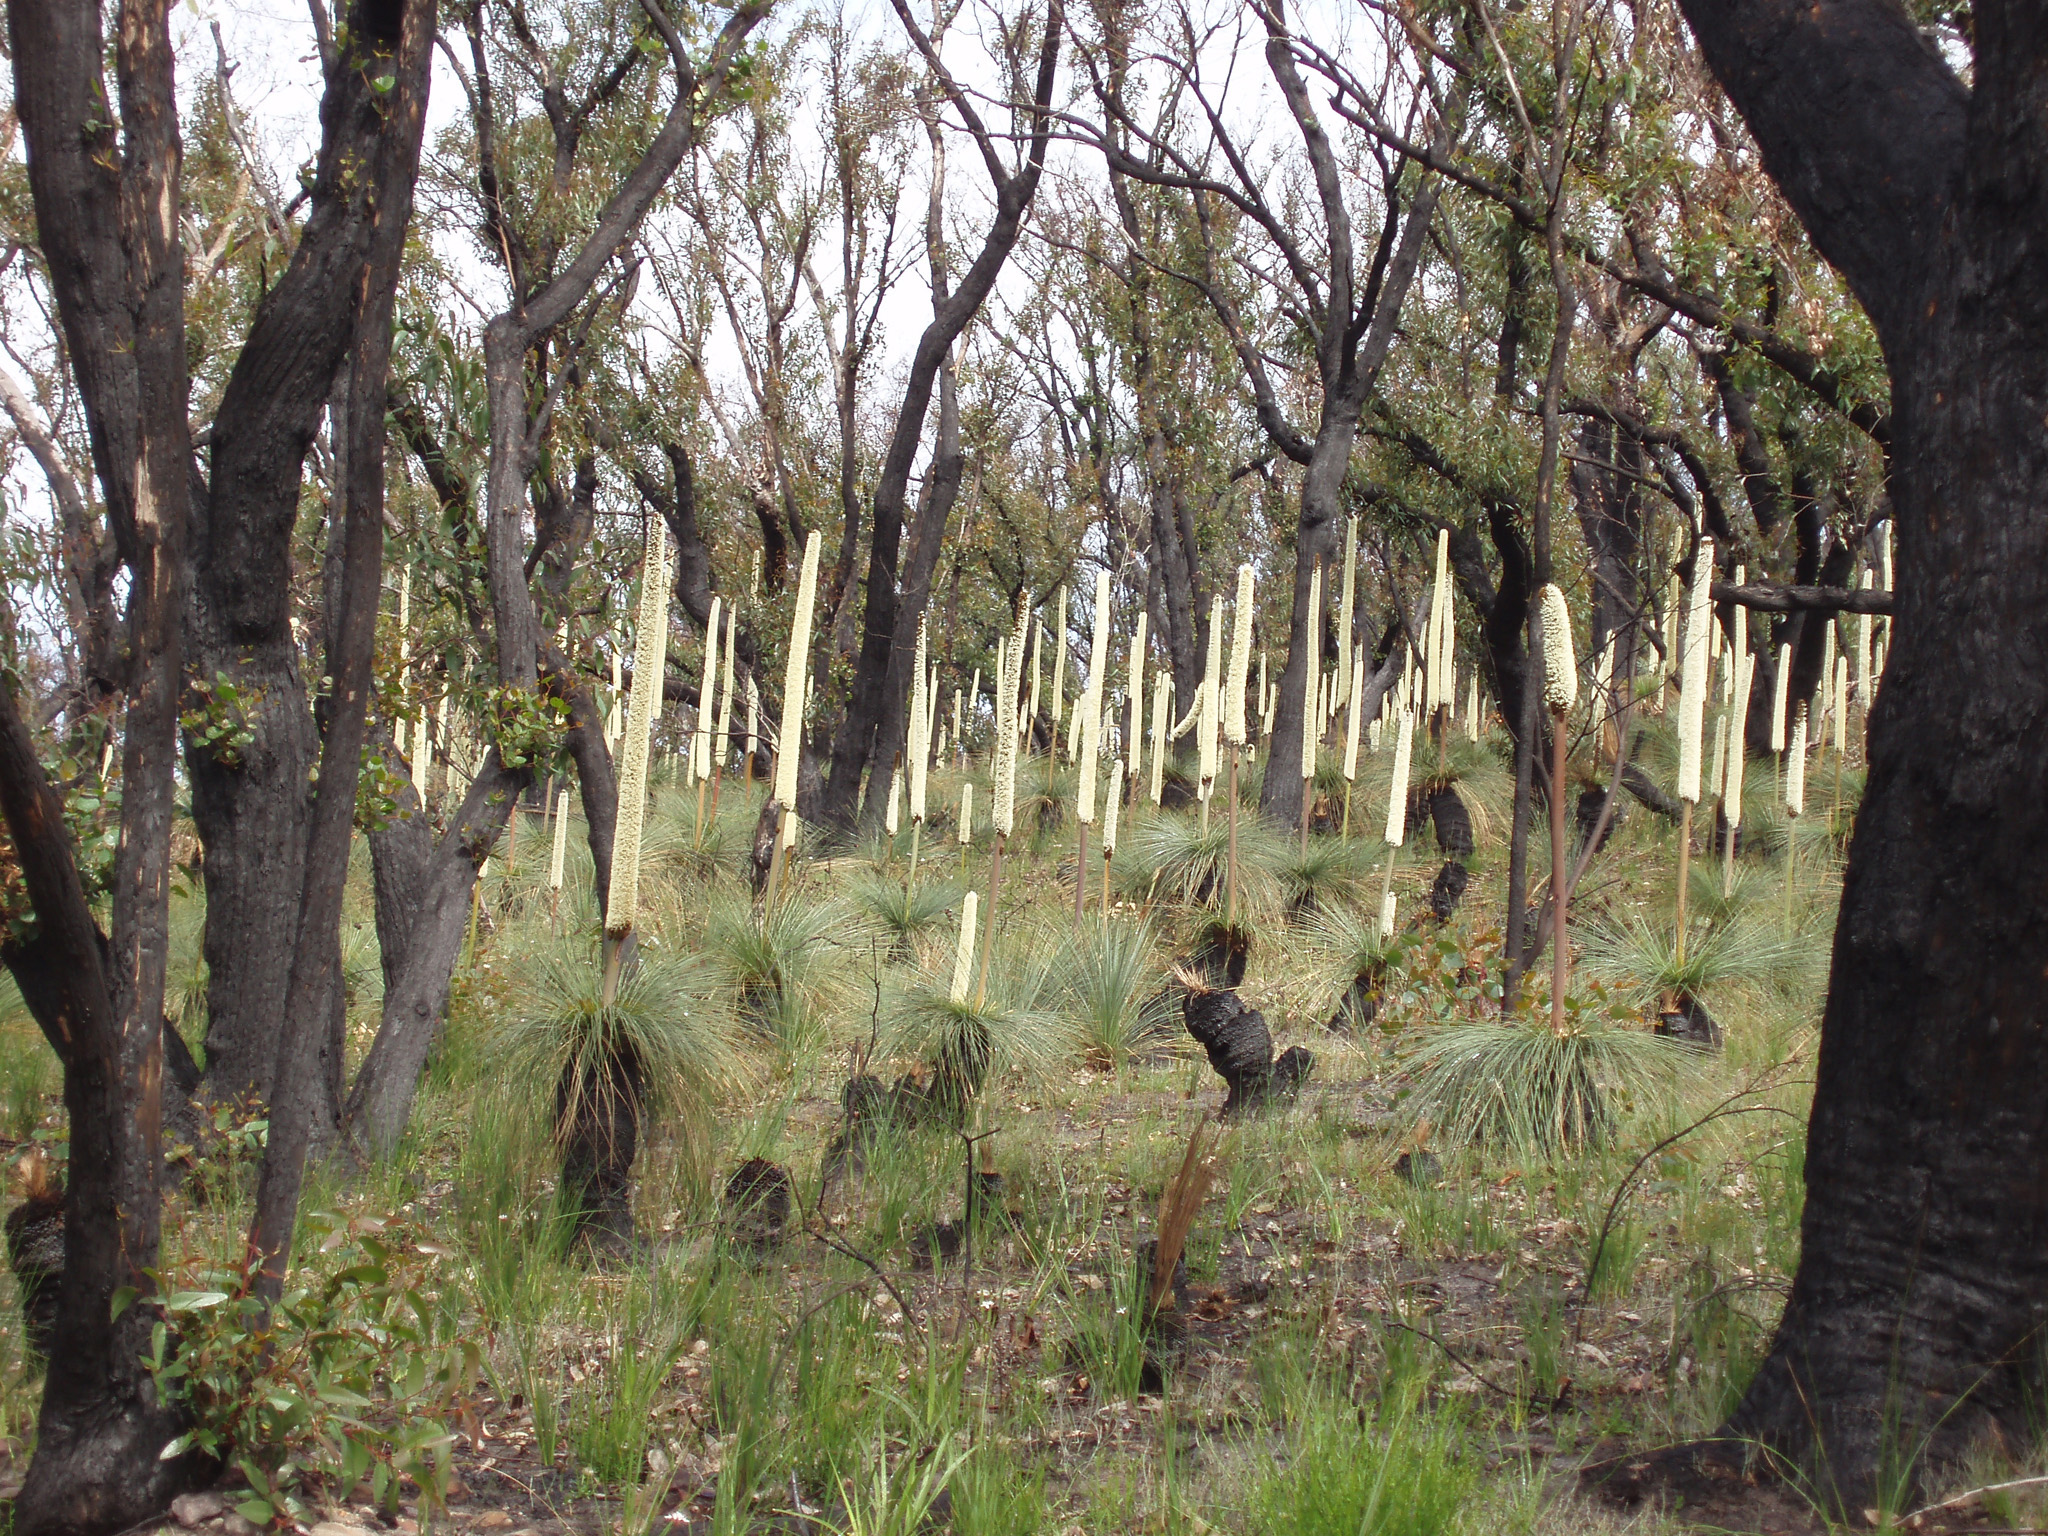 Tall Trees and Green Grasses at Bush Regeneration in Australia